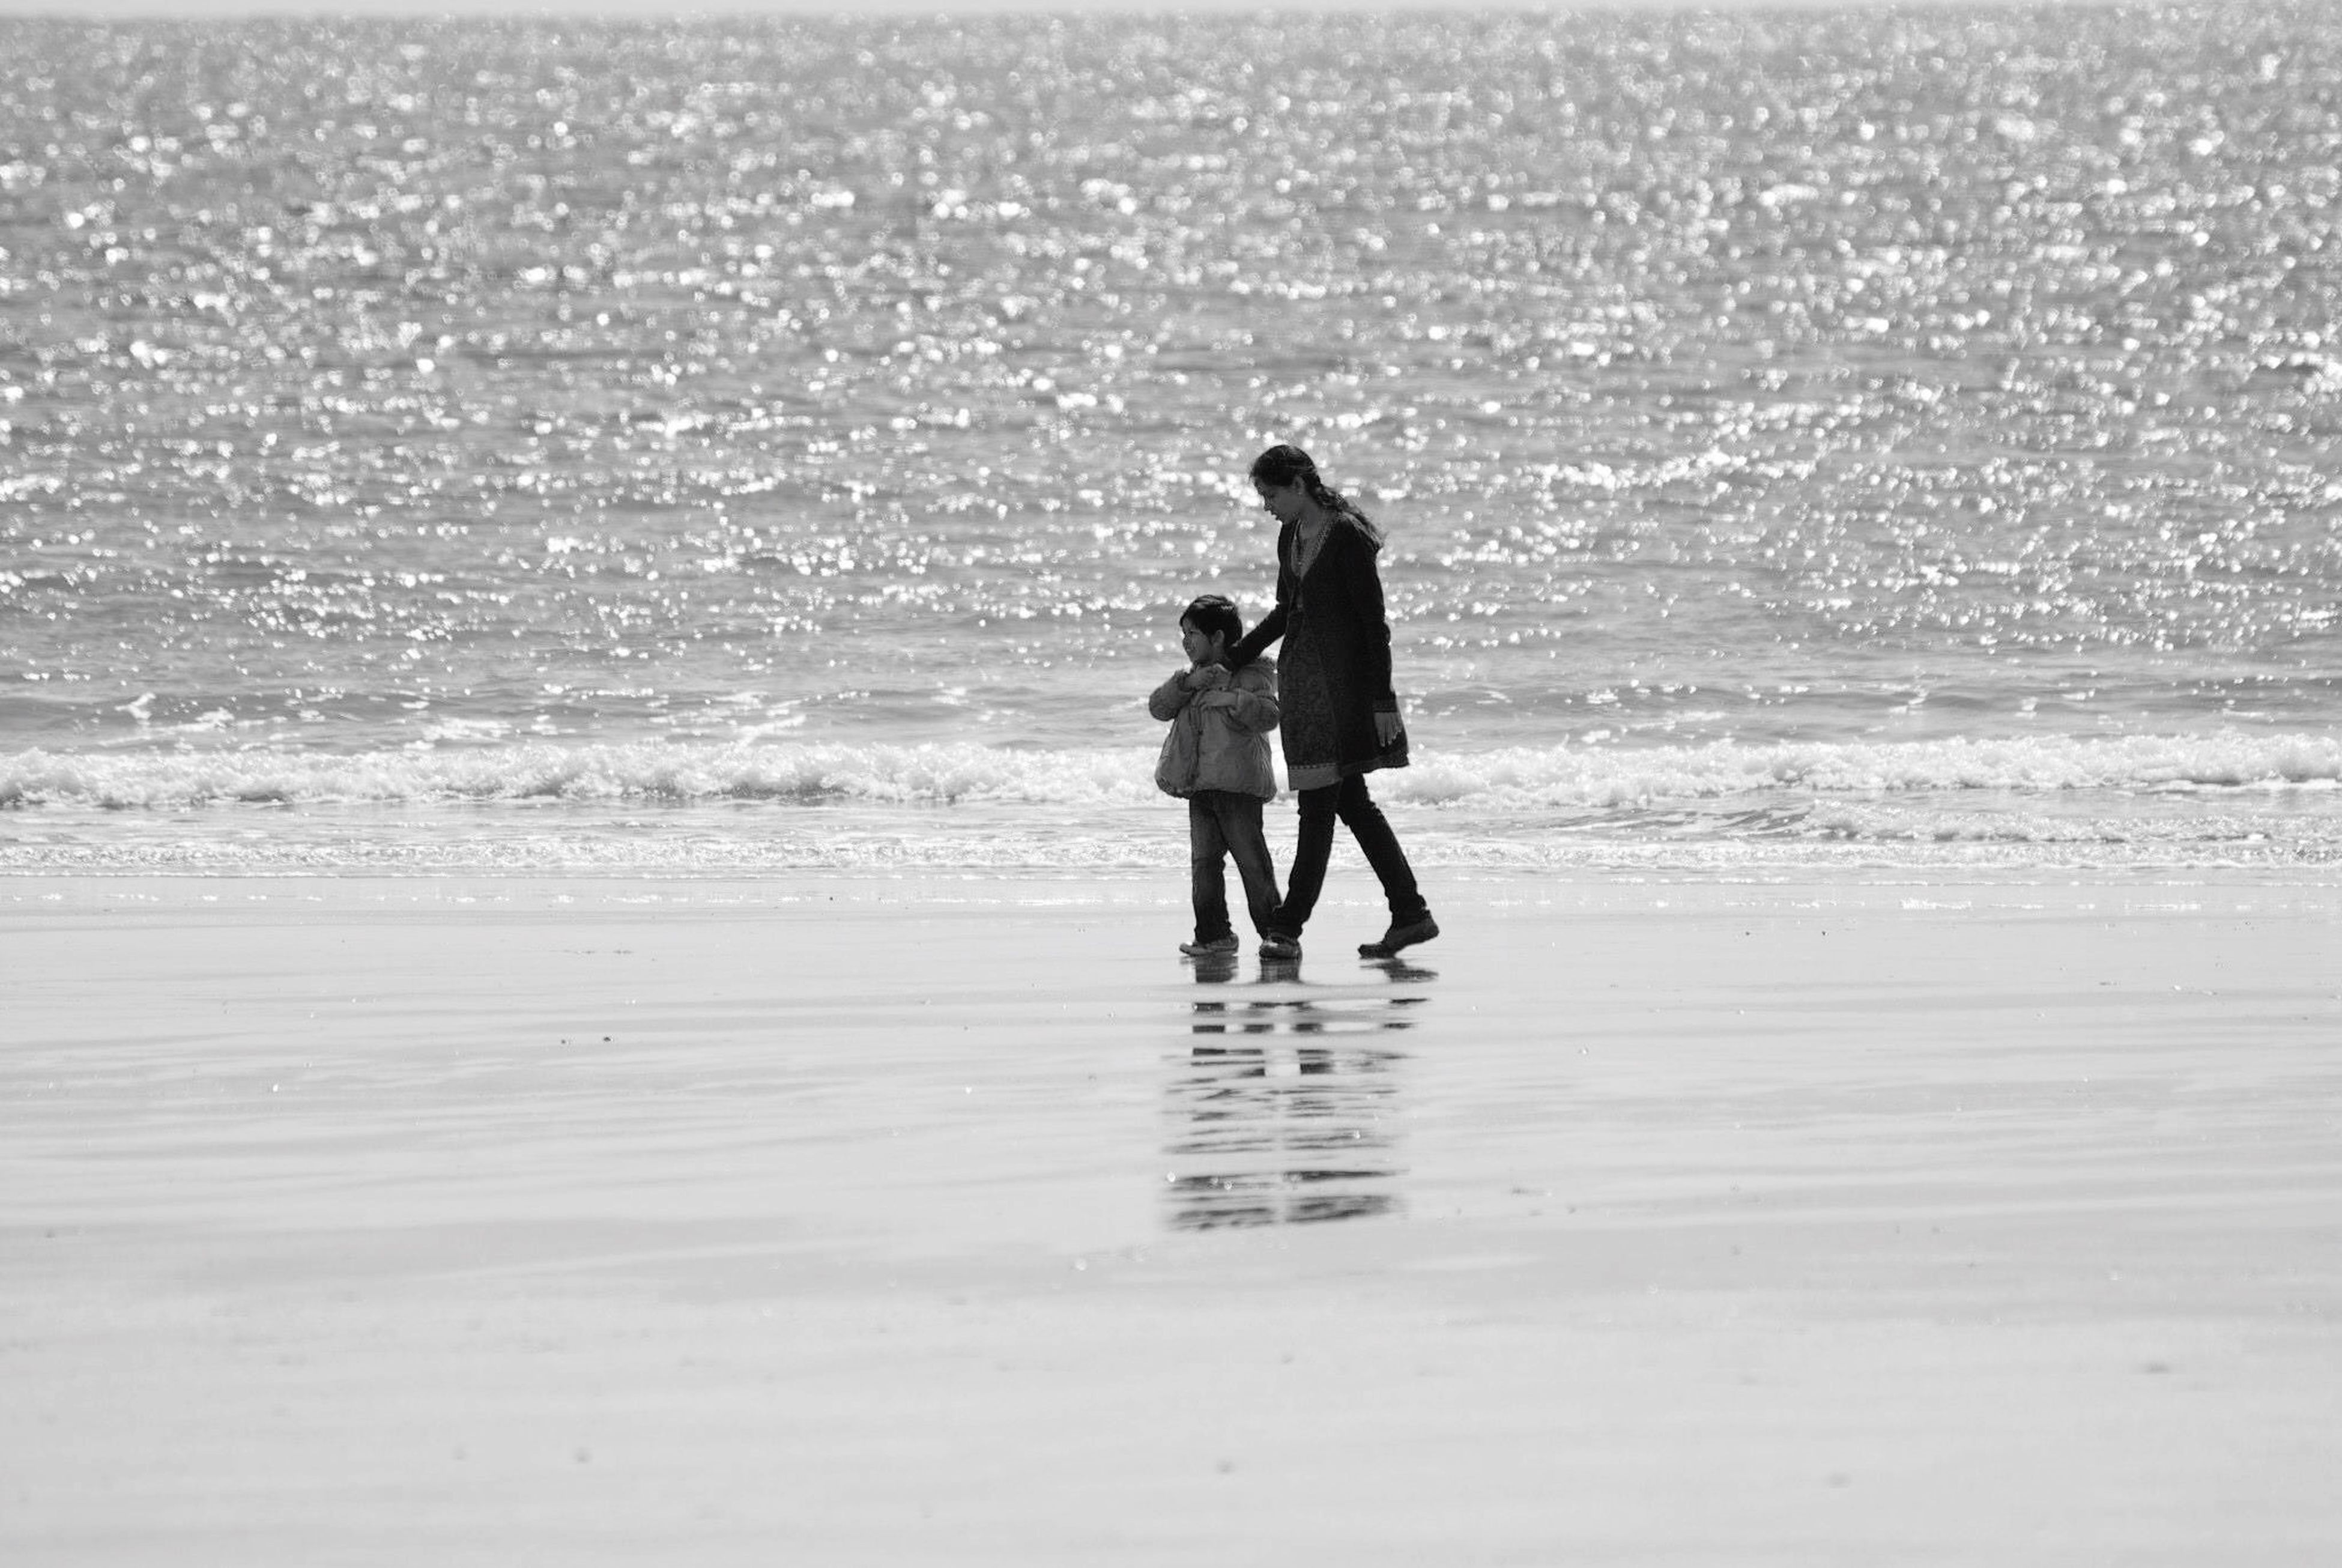 beach, sea, water, leisure activity, full length, lifestyles, shore, sand, horizon over water, togetherness, vacations, rear view, bonding, boys, men, walking, childhood, wave